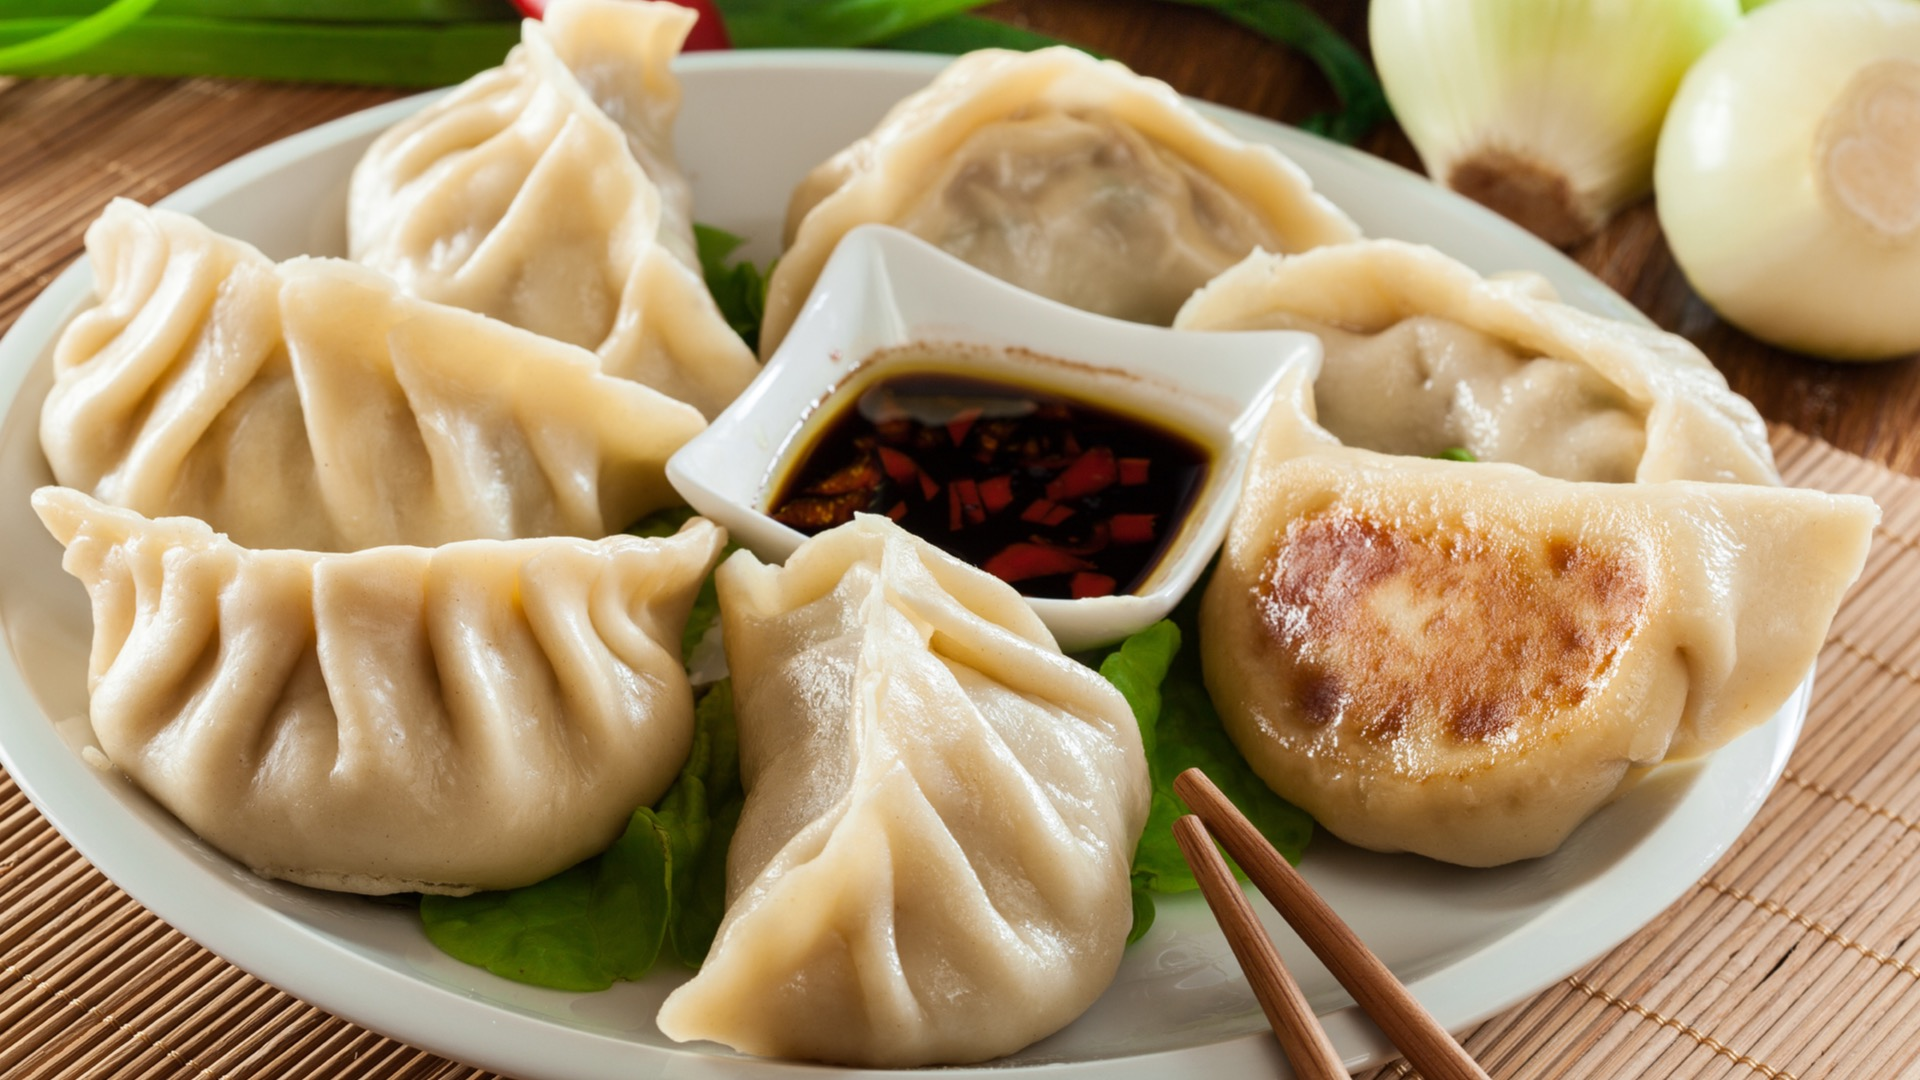 A plate of dumplings and soy sauce | Mount Vernon Marketplace in Baltimore